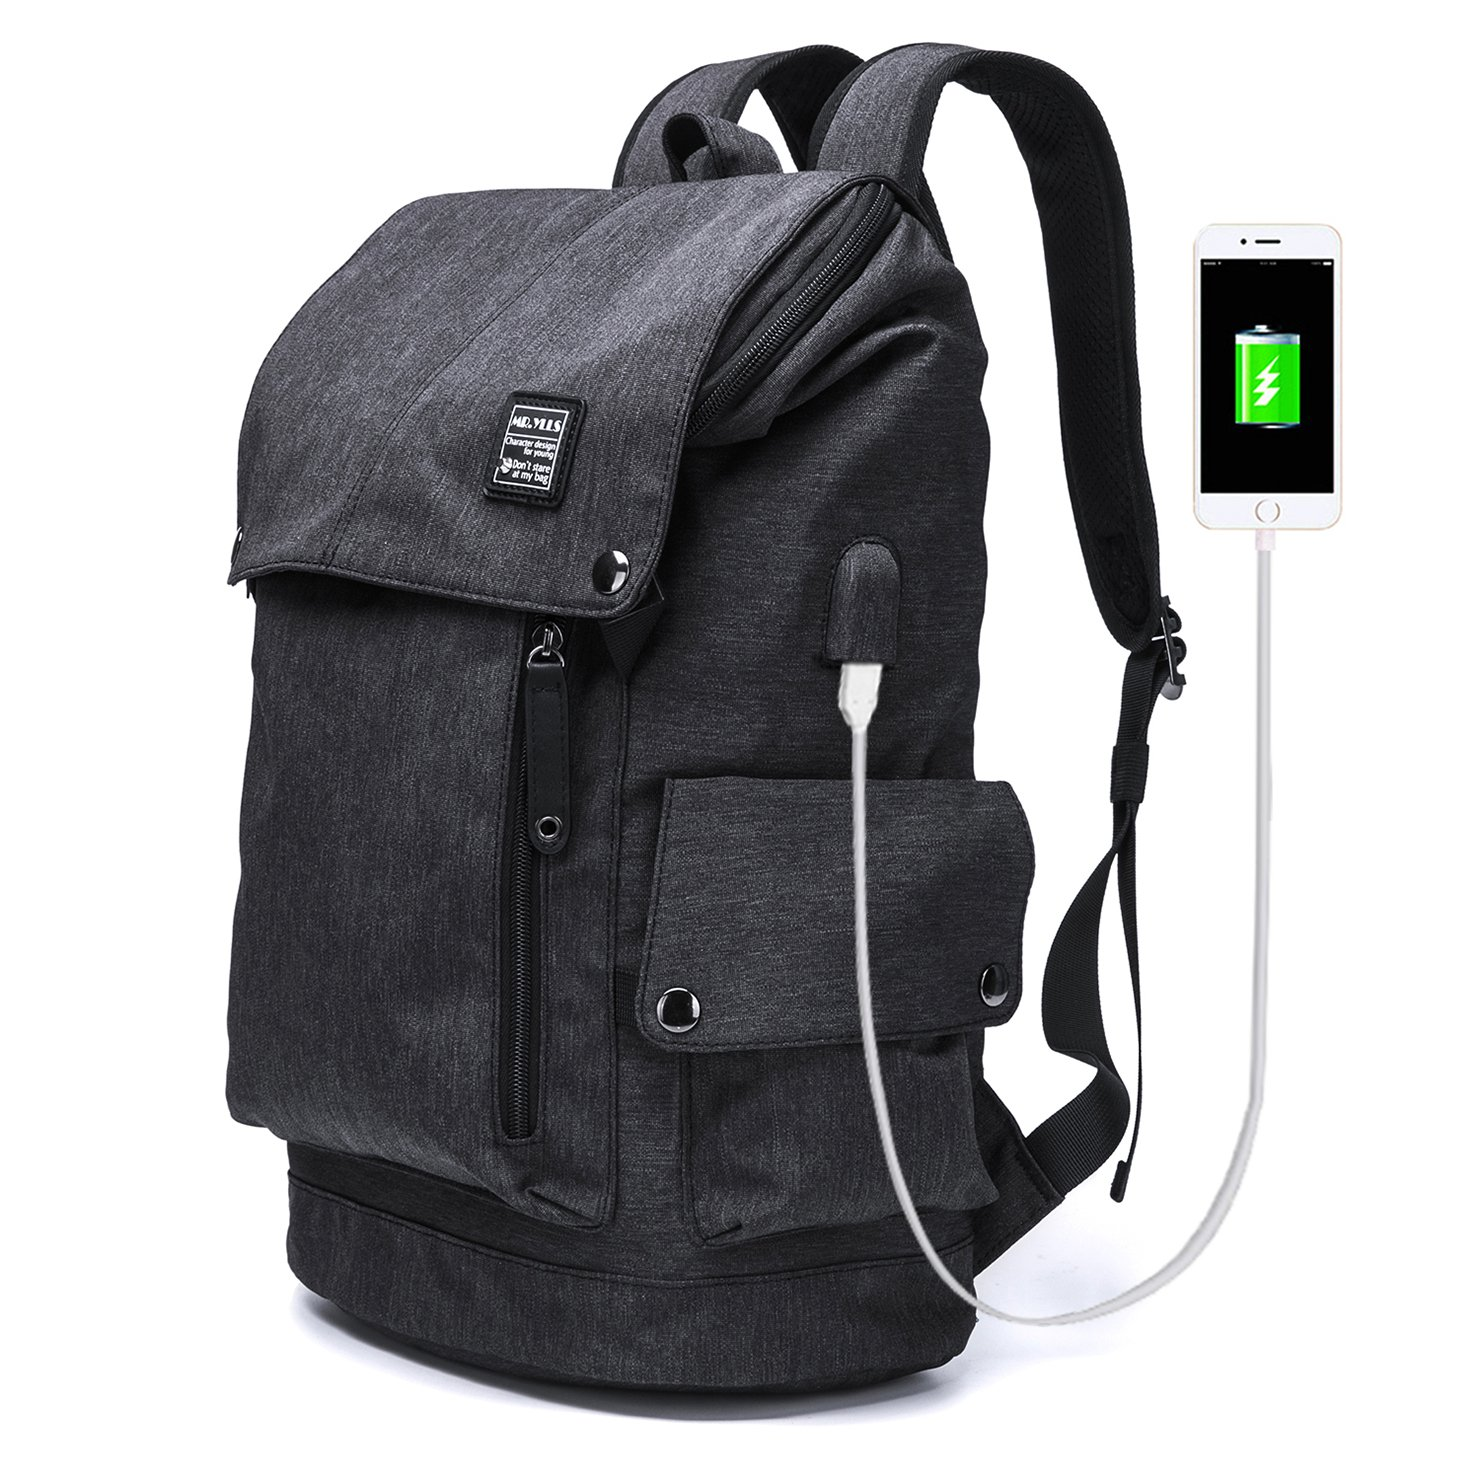 MR.YLLS Business Laptop Backpack for Men/Women Anti theft Tear/water Resistant Travel bag School/College Backpack fits up to 15.6 Inch Notebook Computer USB Charging Backpack (Black) factory Outlet MR.YLLS -B007